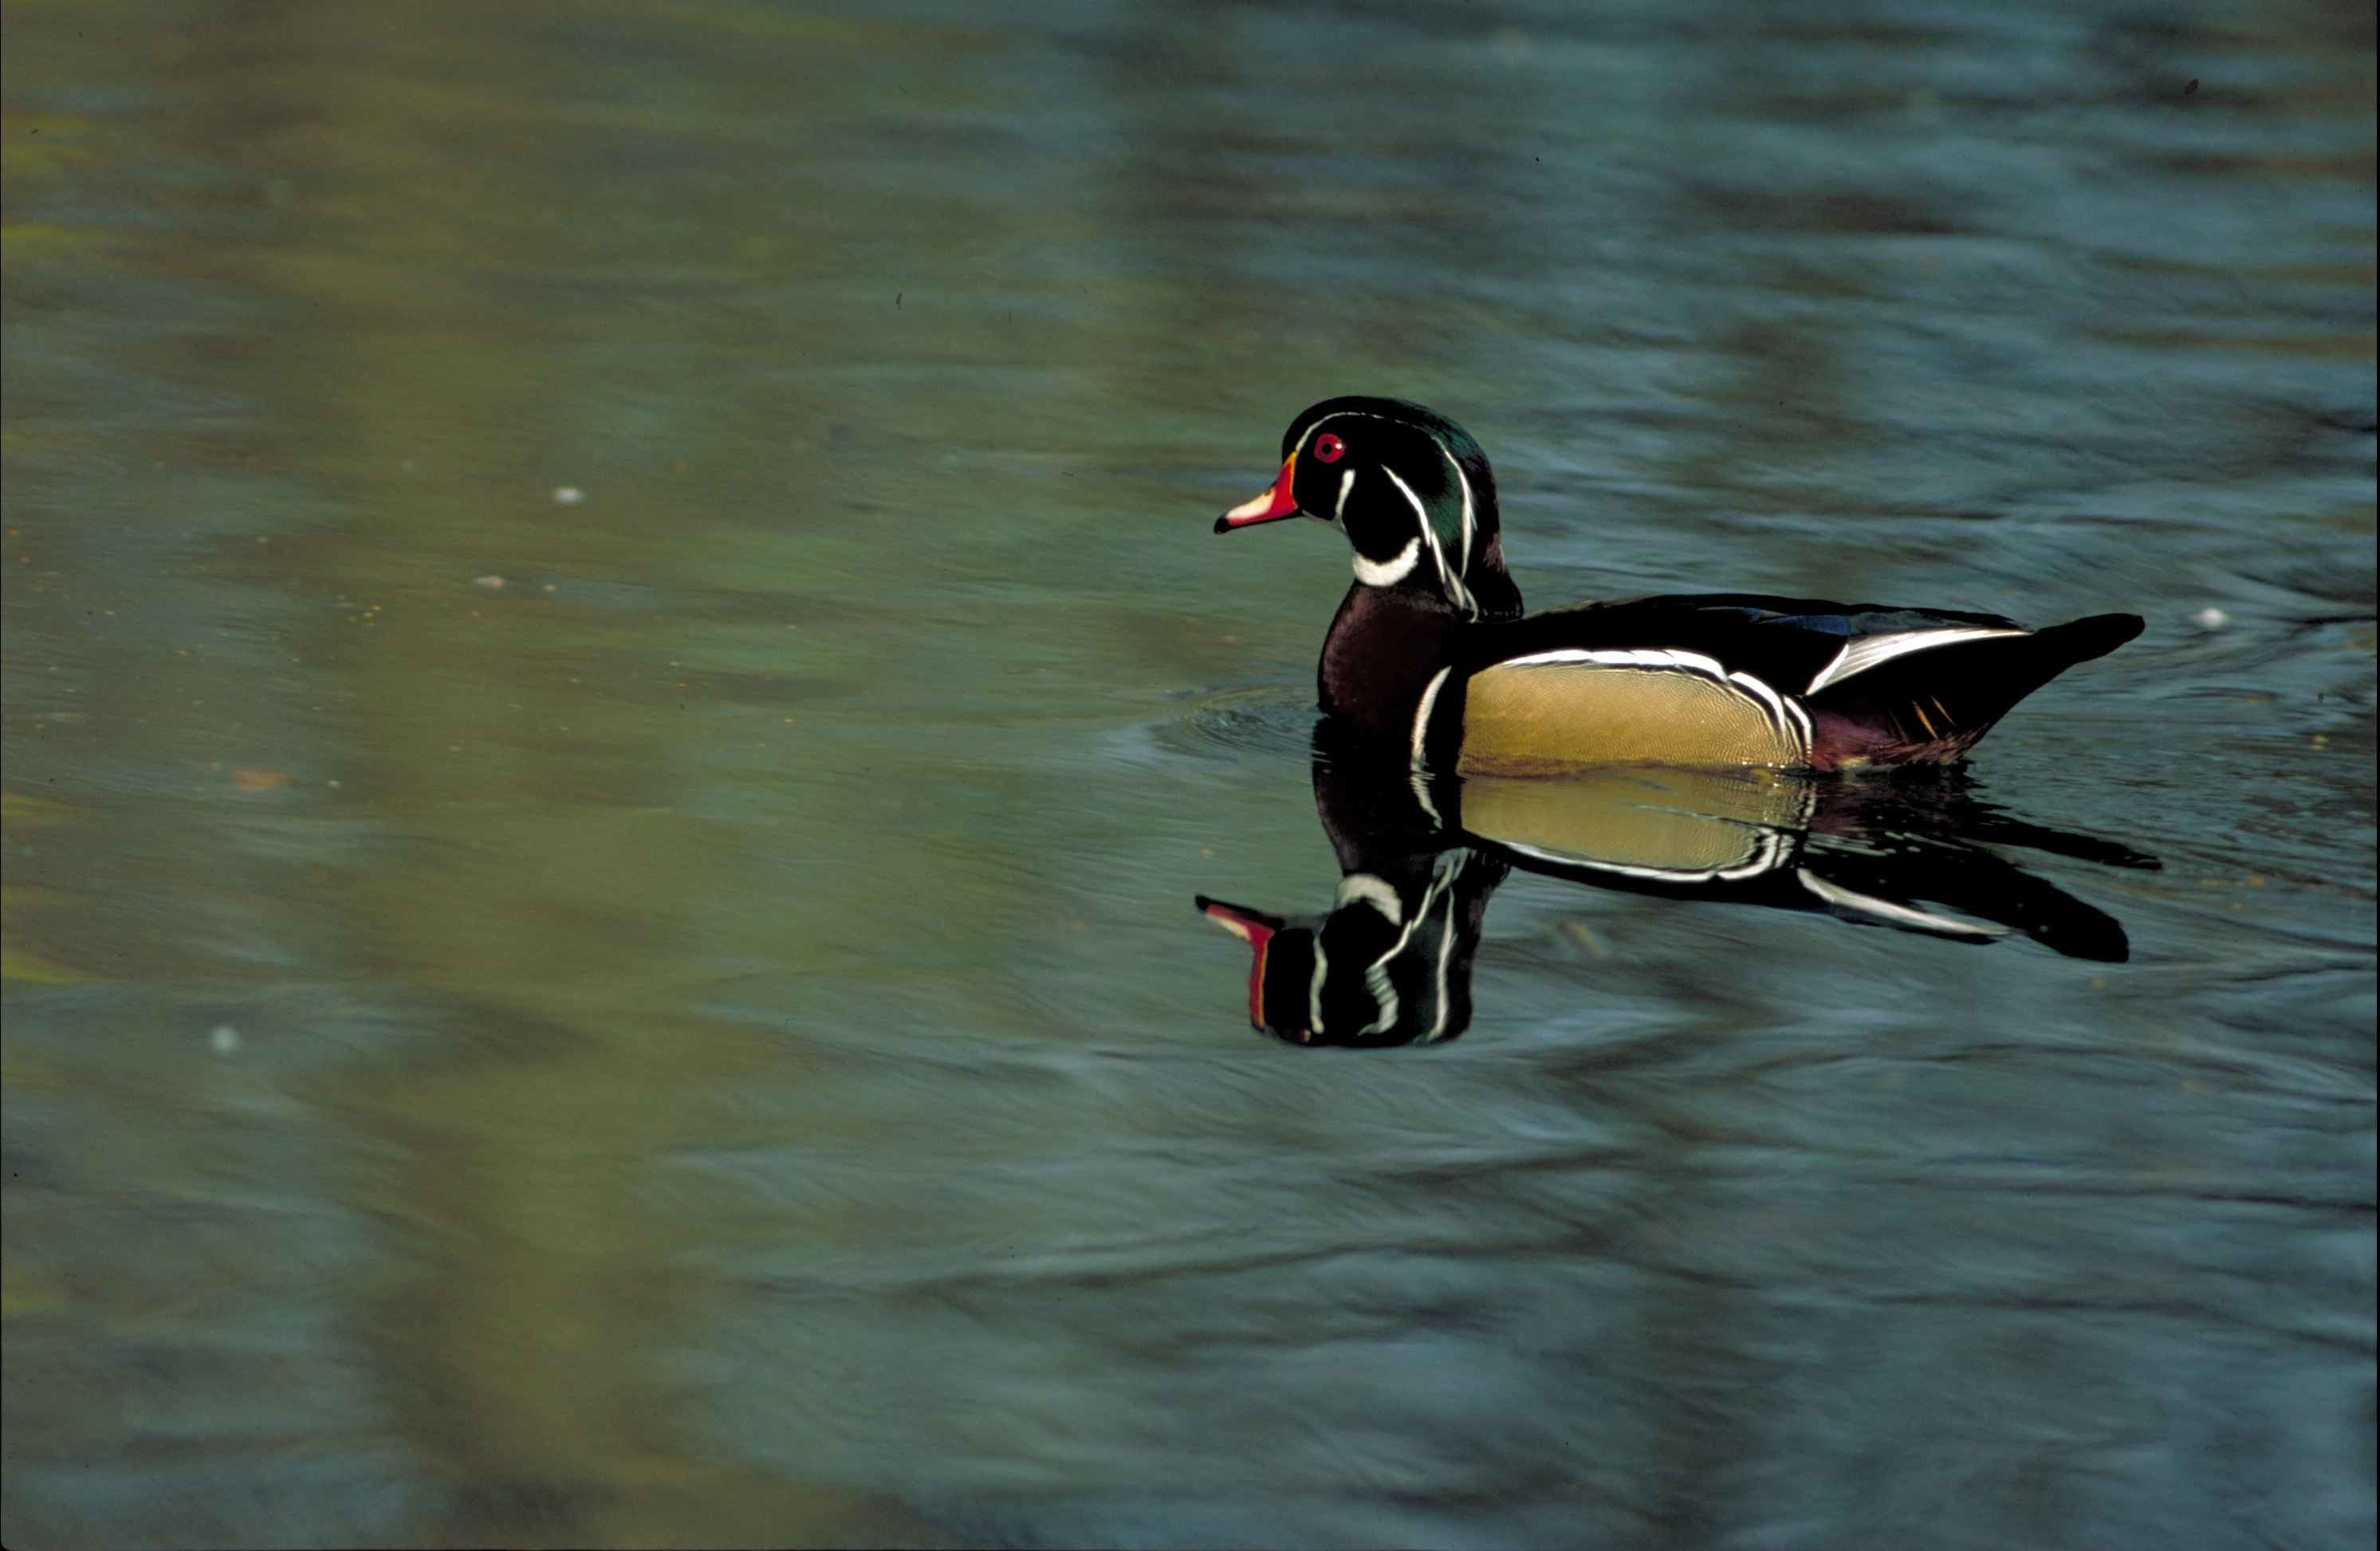 Res: 2985x1945, up-close, wood, duck, bird, sposa, swimming, quiet, water